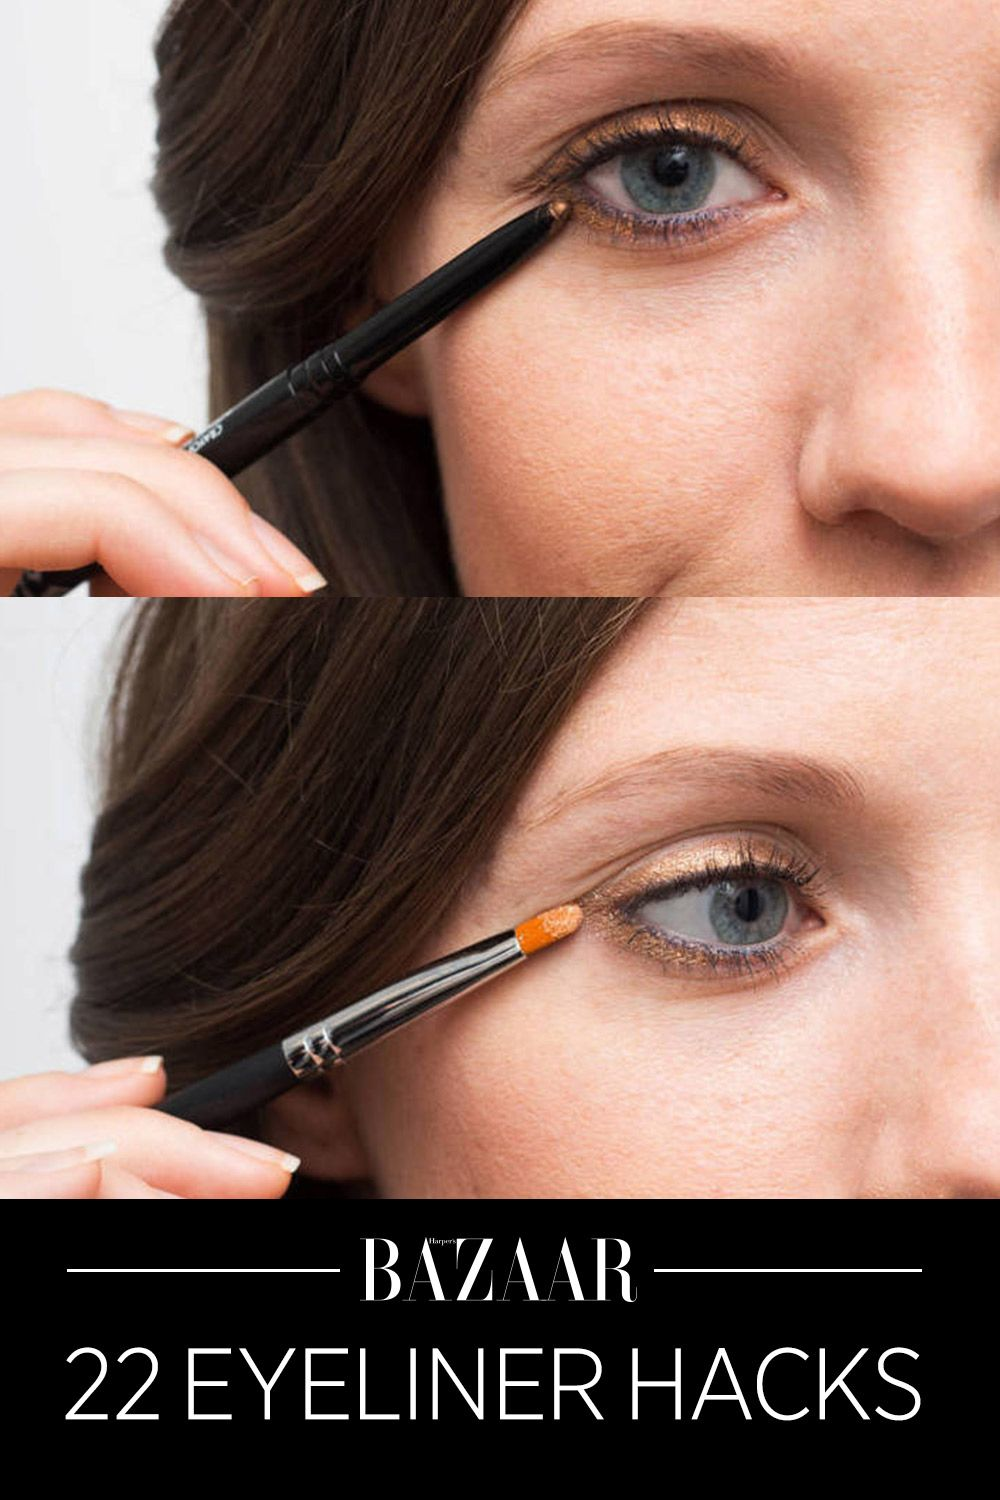 22 Eyeliner Hacks To Transform Your Beauty Routine